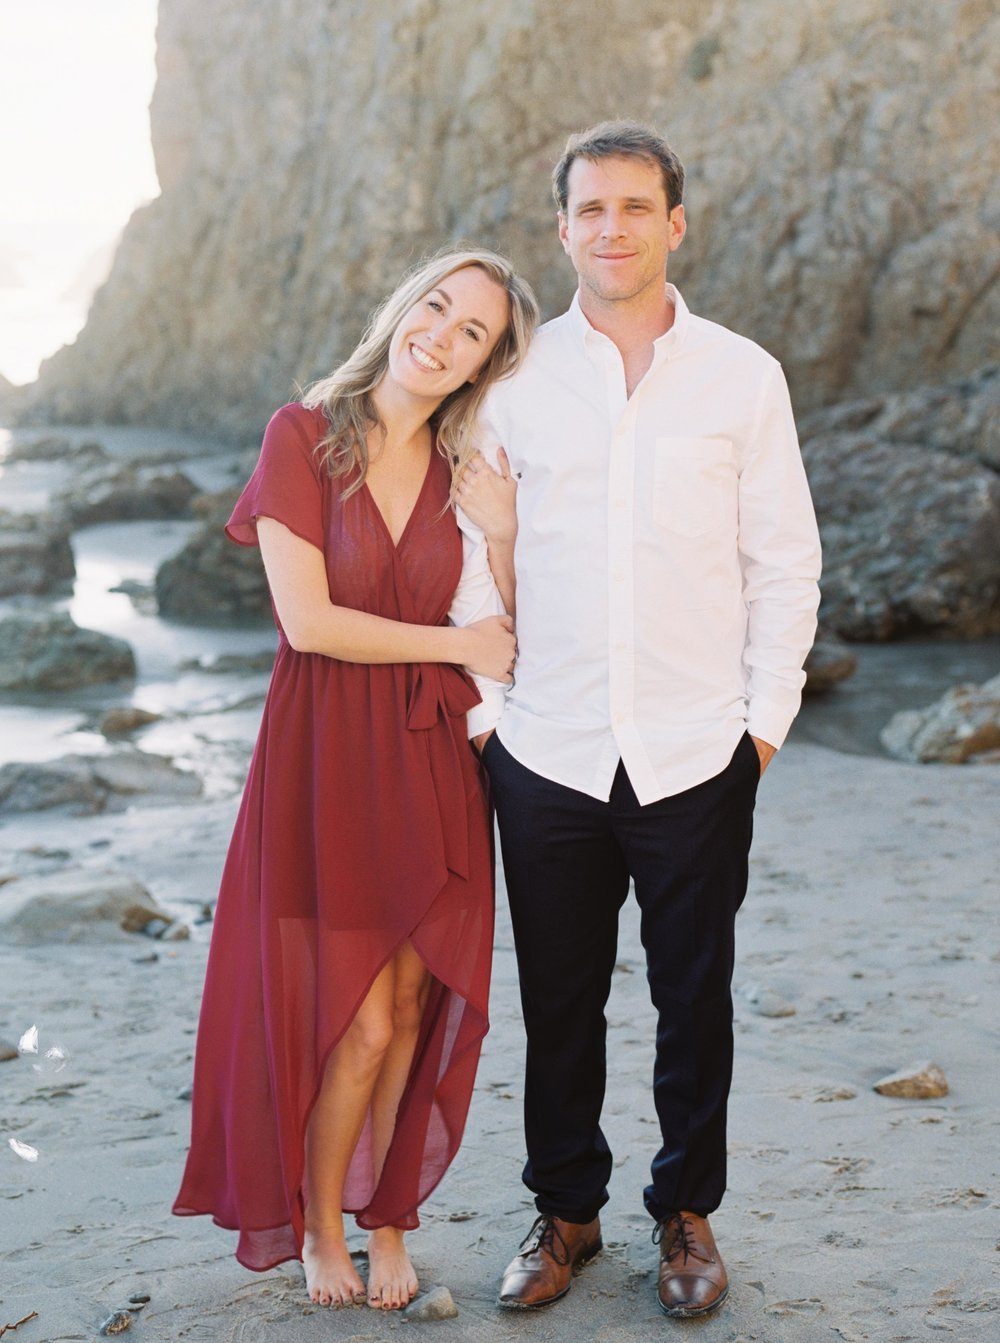 ELMATADOR_FUJI400H_MALIBU_LOSANGELES_PHOTOGRAPHER_WEDDING_ENGAGEMENT_STYLEMEPRETTY_FILM_BEACH_SOCAL_KATELROSEPHOTOGRAPHY_006.jpg